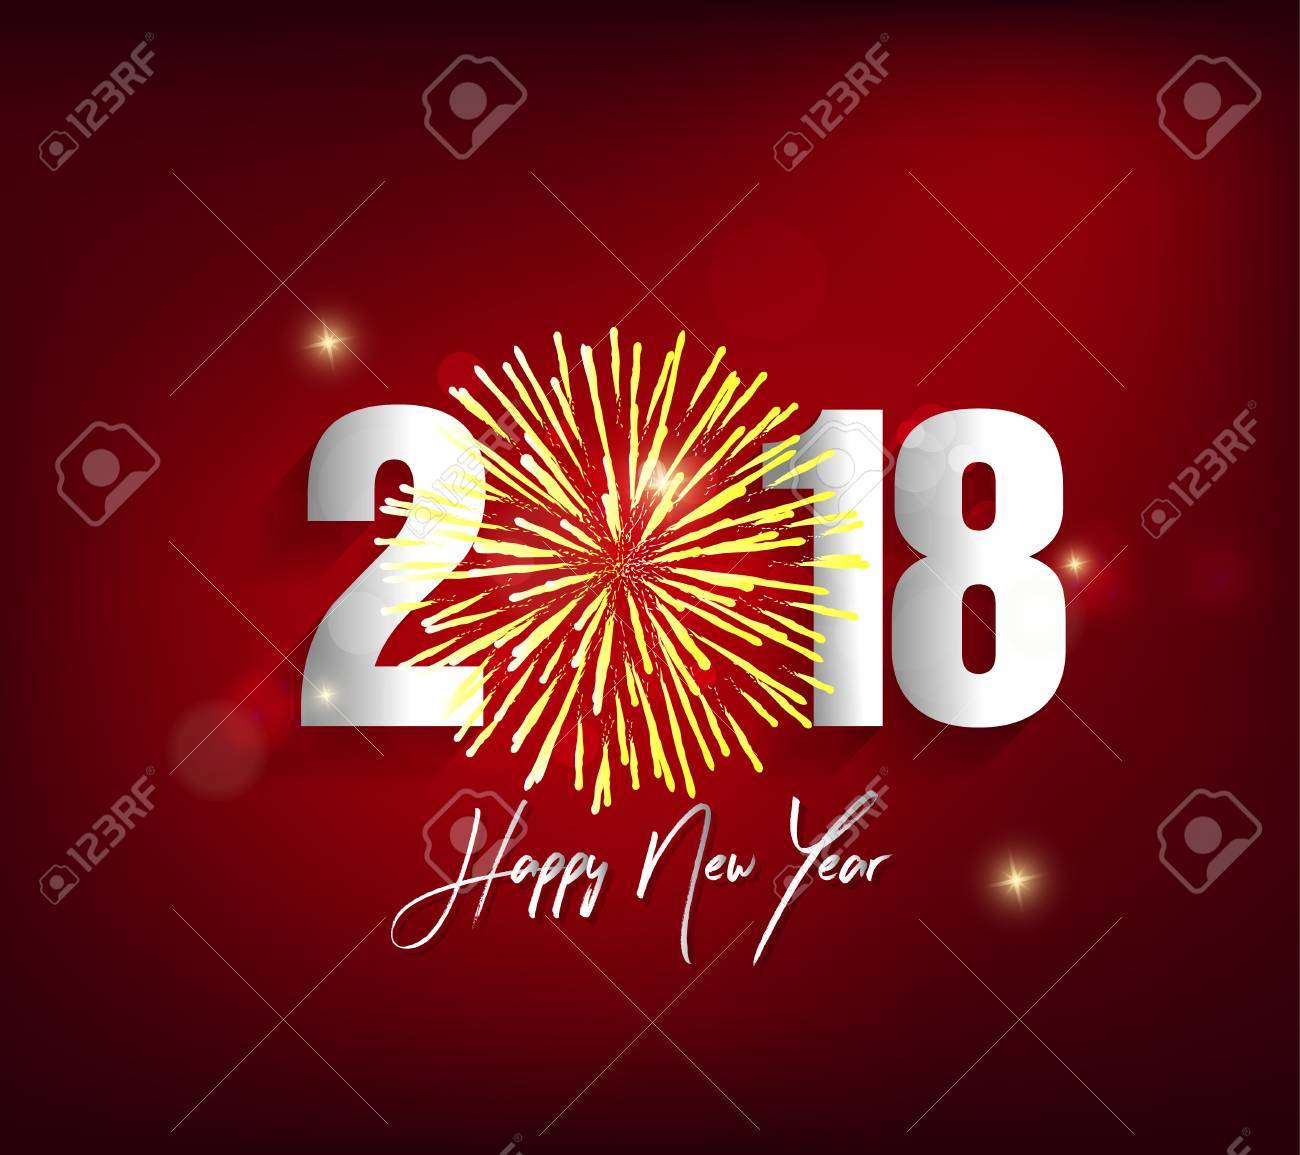 happy new year 2018 greeting card design stock vector 89588857